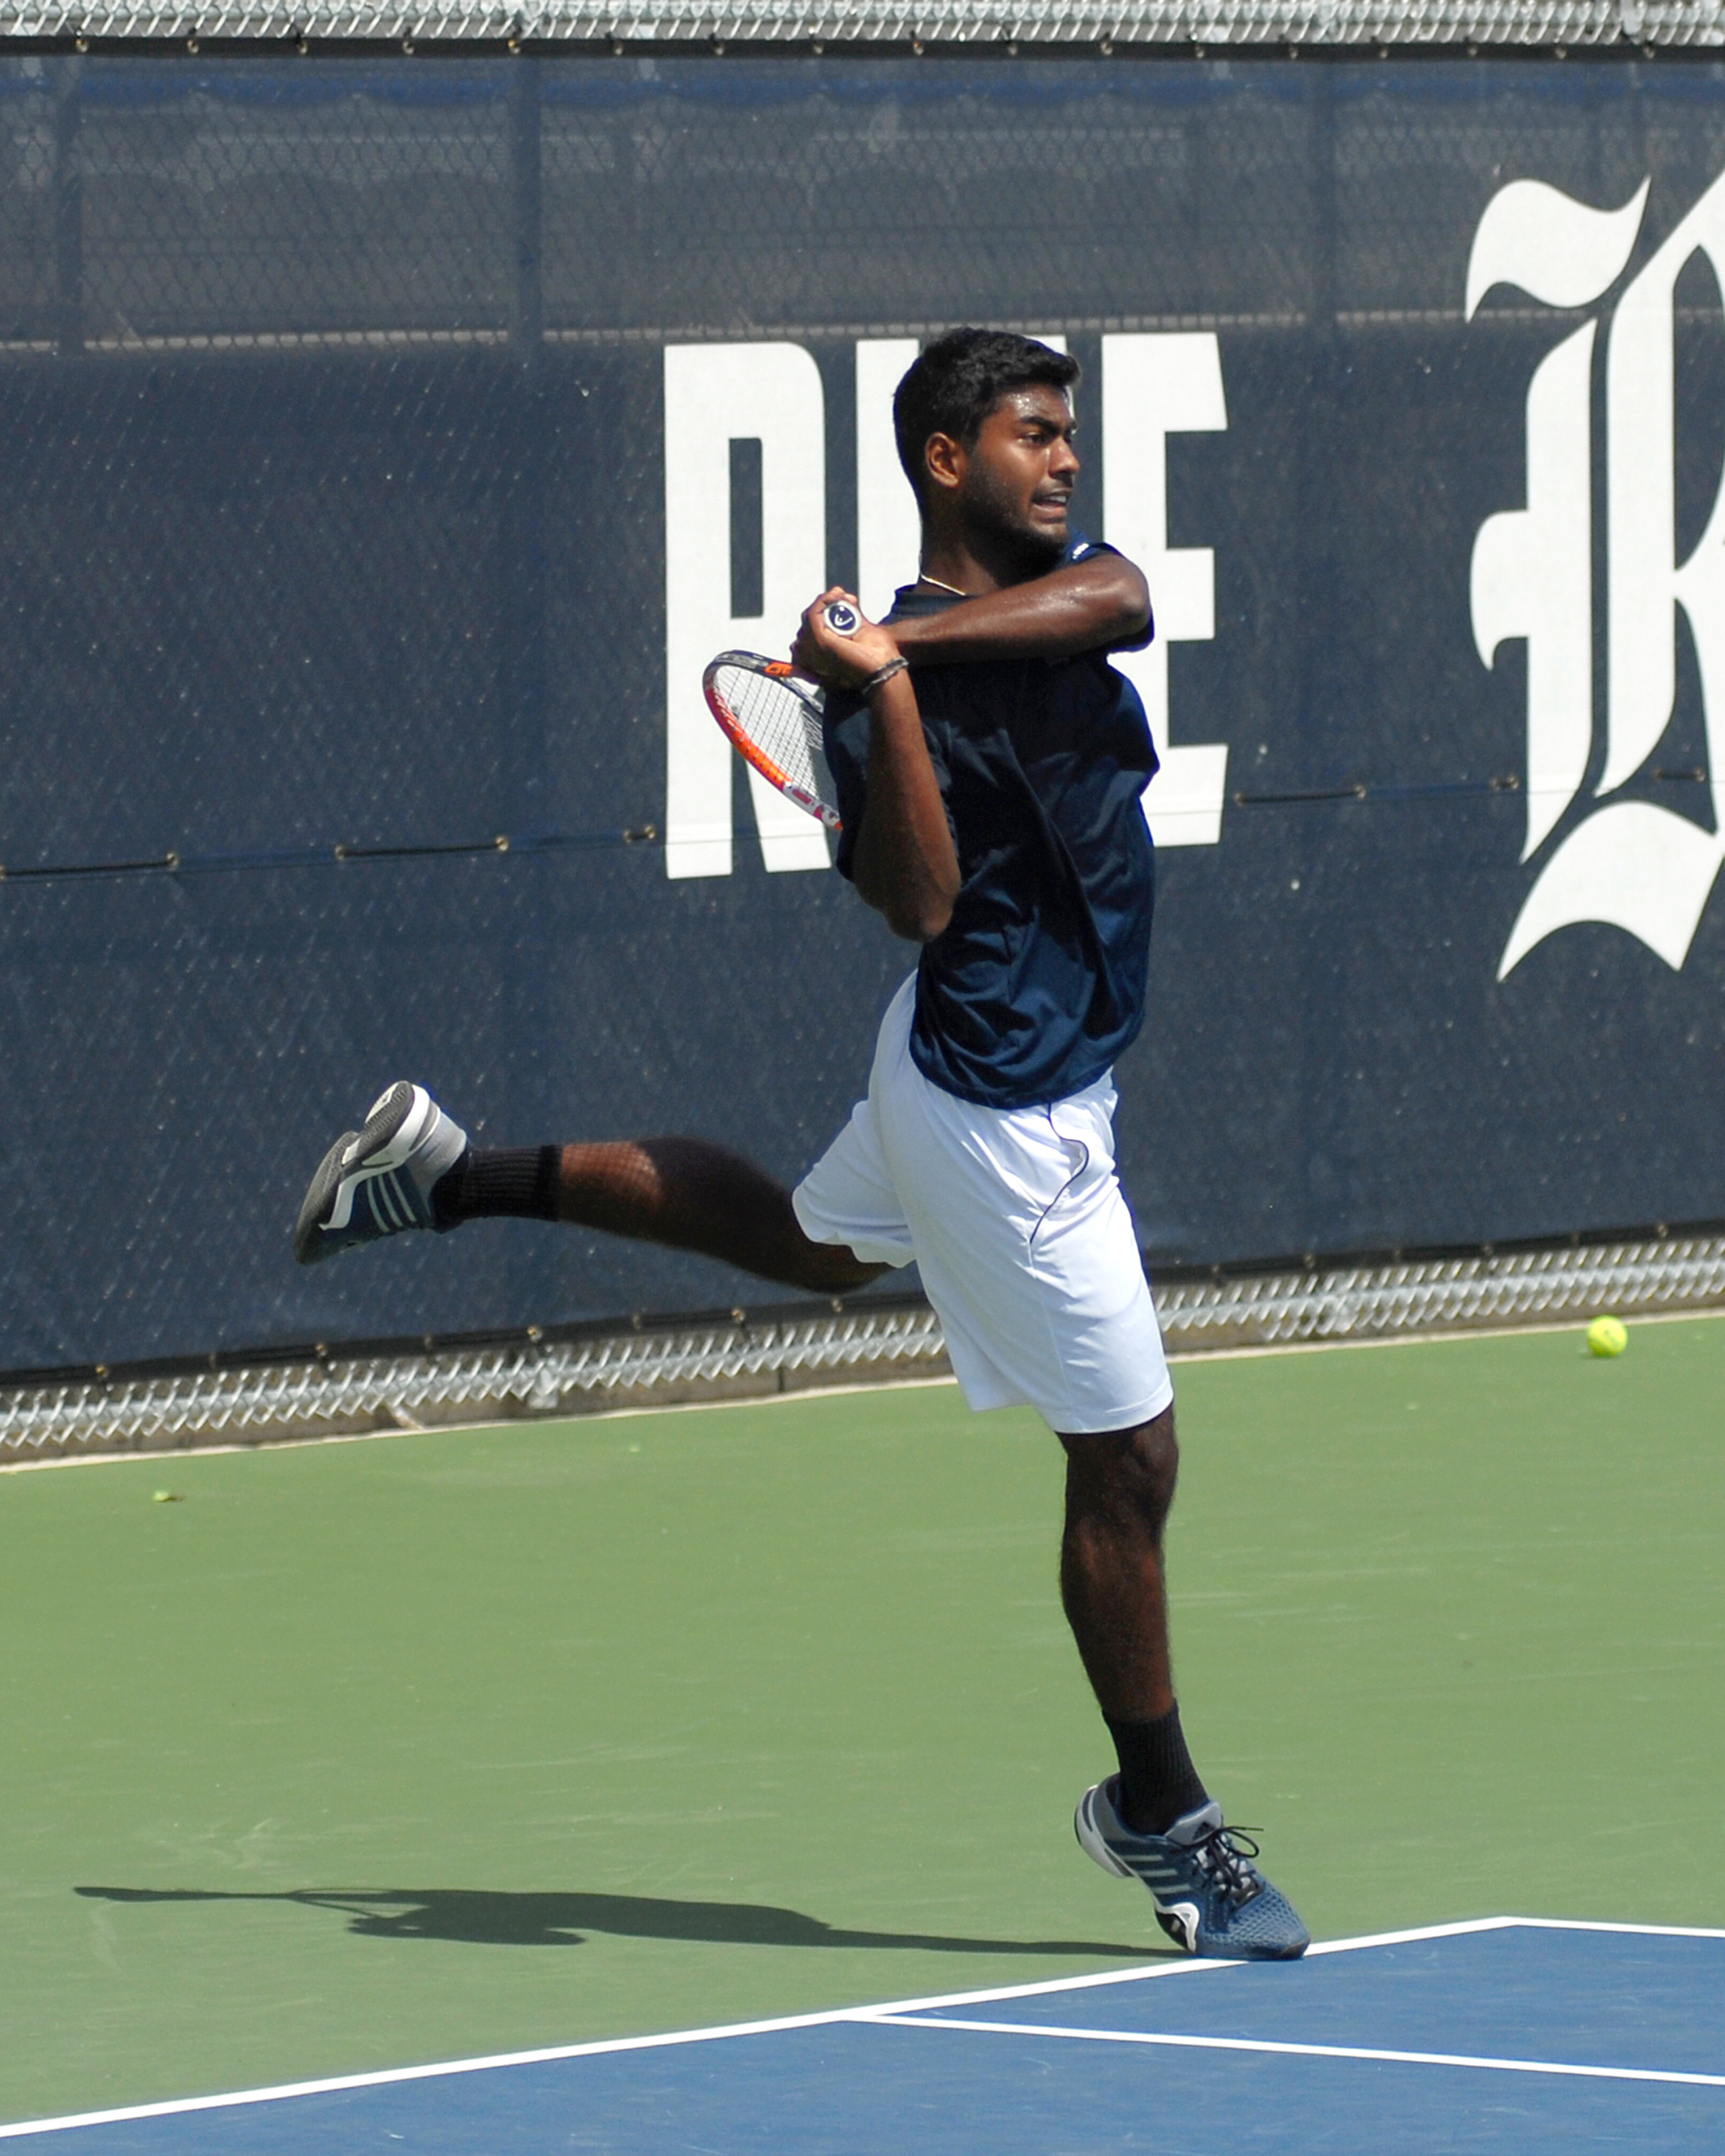 Senior <b>Srikar Alla</b> was selected first team all-conference by a vote of the league's coaches.